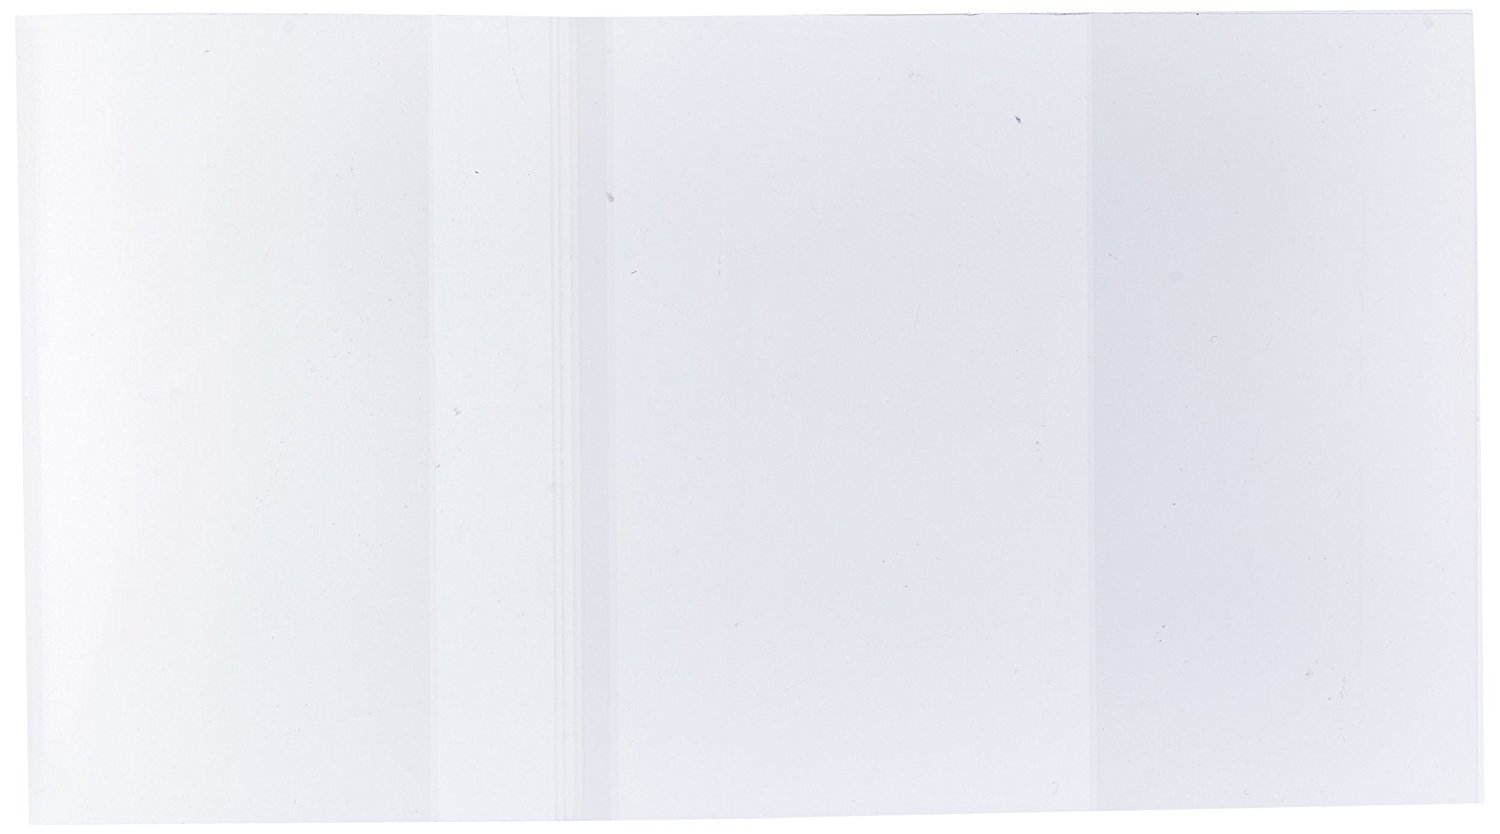 ClearBags 10.5x19.5 Clear Book Covers | For 10.25 Tall,19.5 Wide | Protect Against Wear, Tear Water | Archival Safe Acid Free | BC101H (Pack of 25)